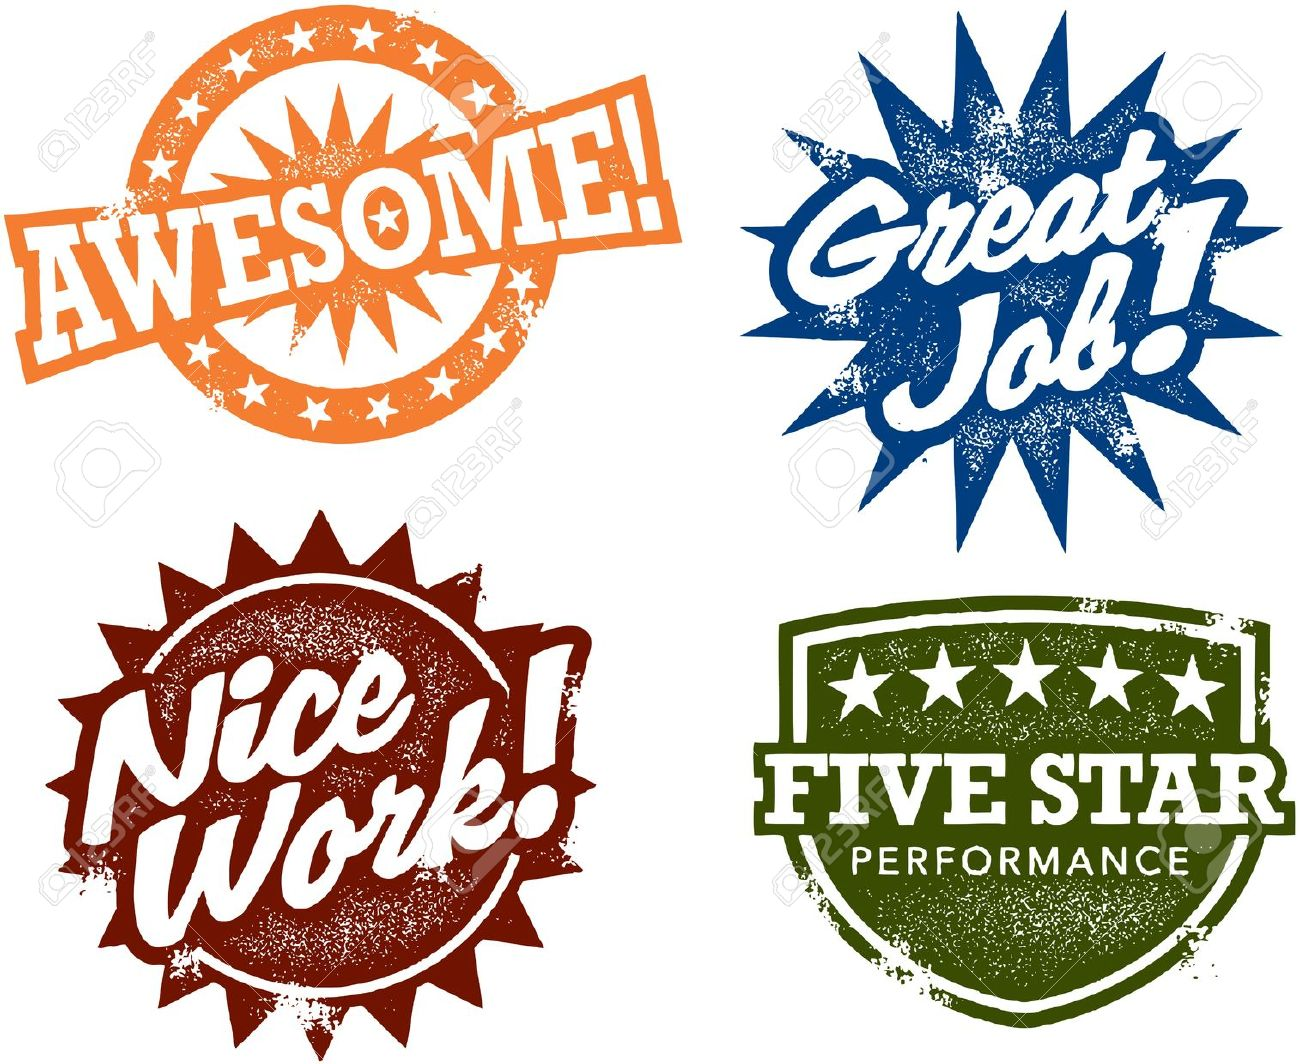 Excellent work clipart clipart free stock Great Job Images | Free download best Great Job Images on ClipArtMag.com clipart free stock